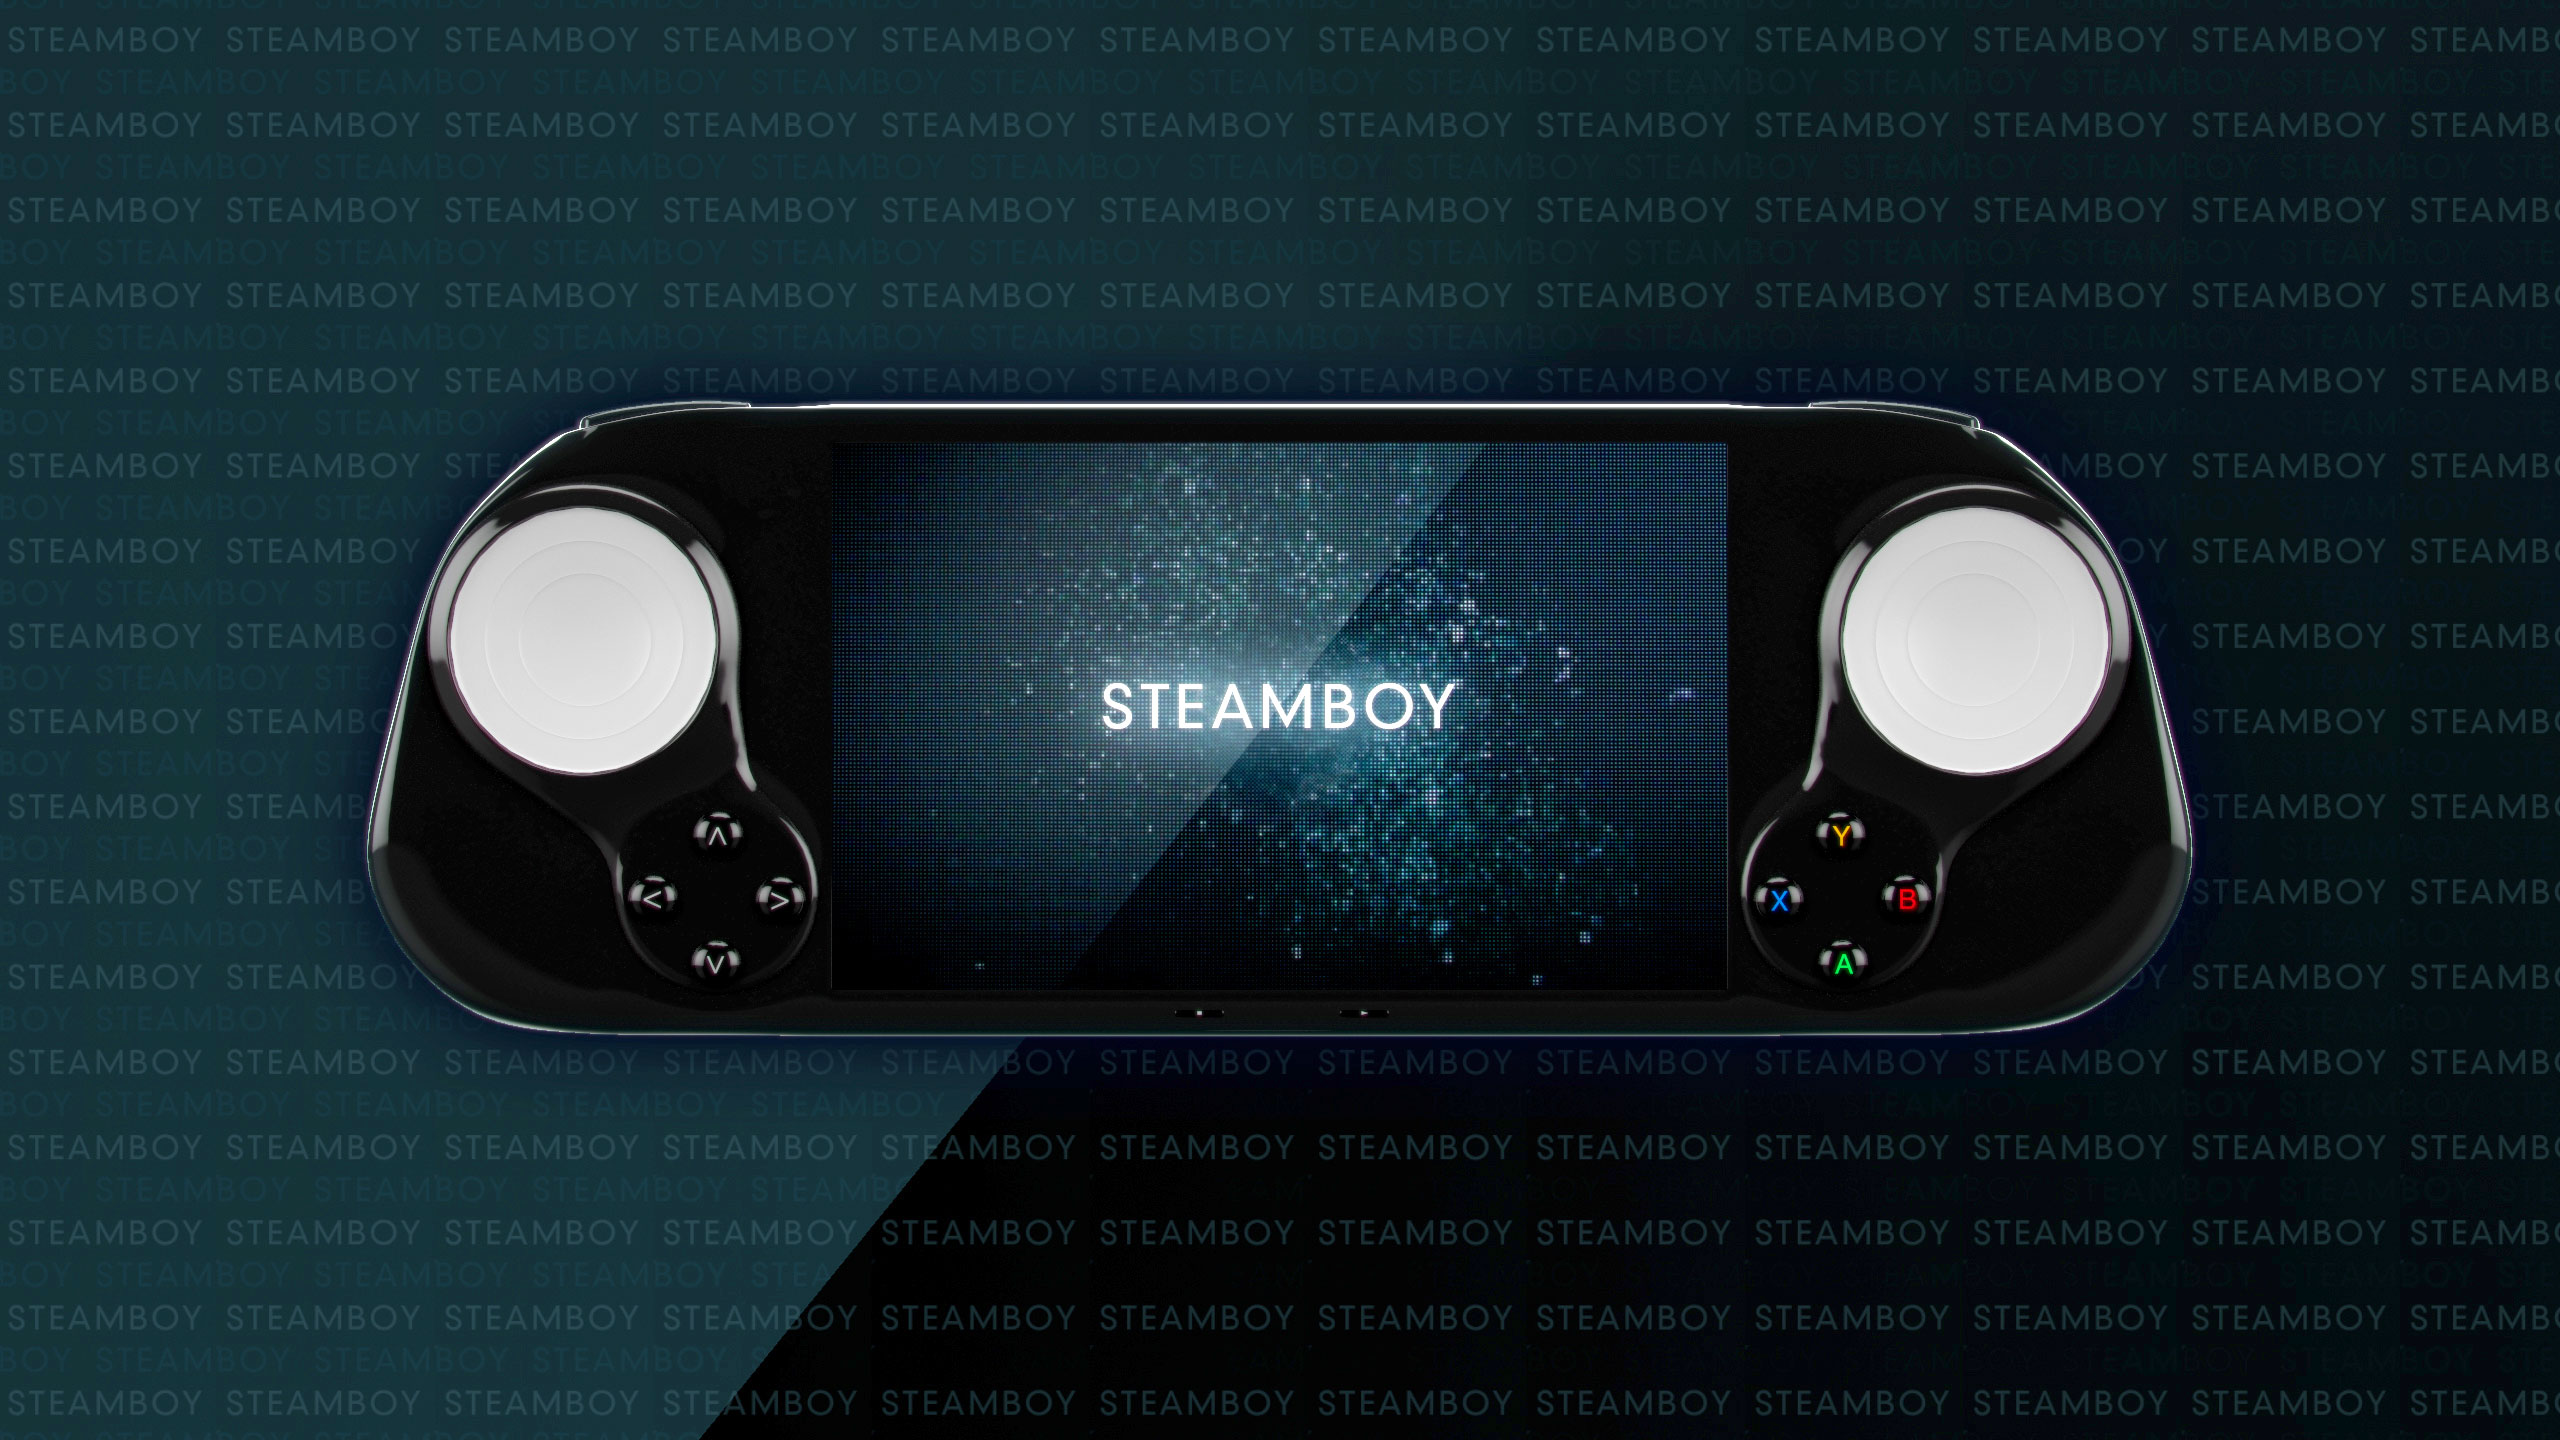 SteamBoy anunciada en el post E3 2014